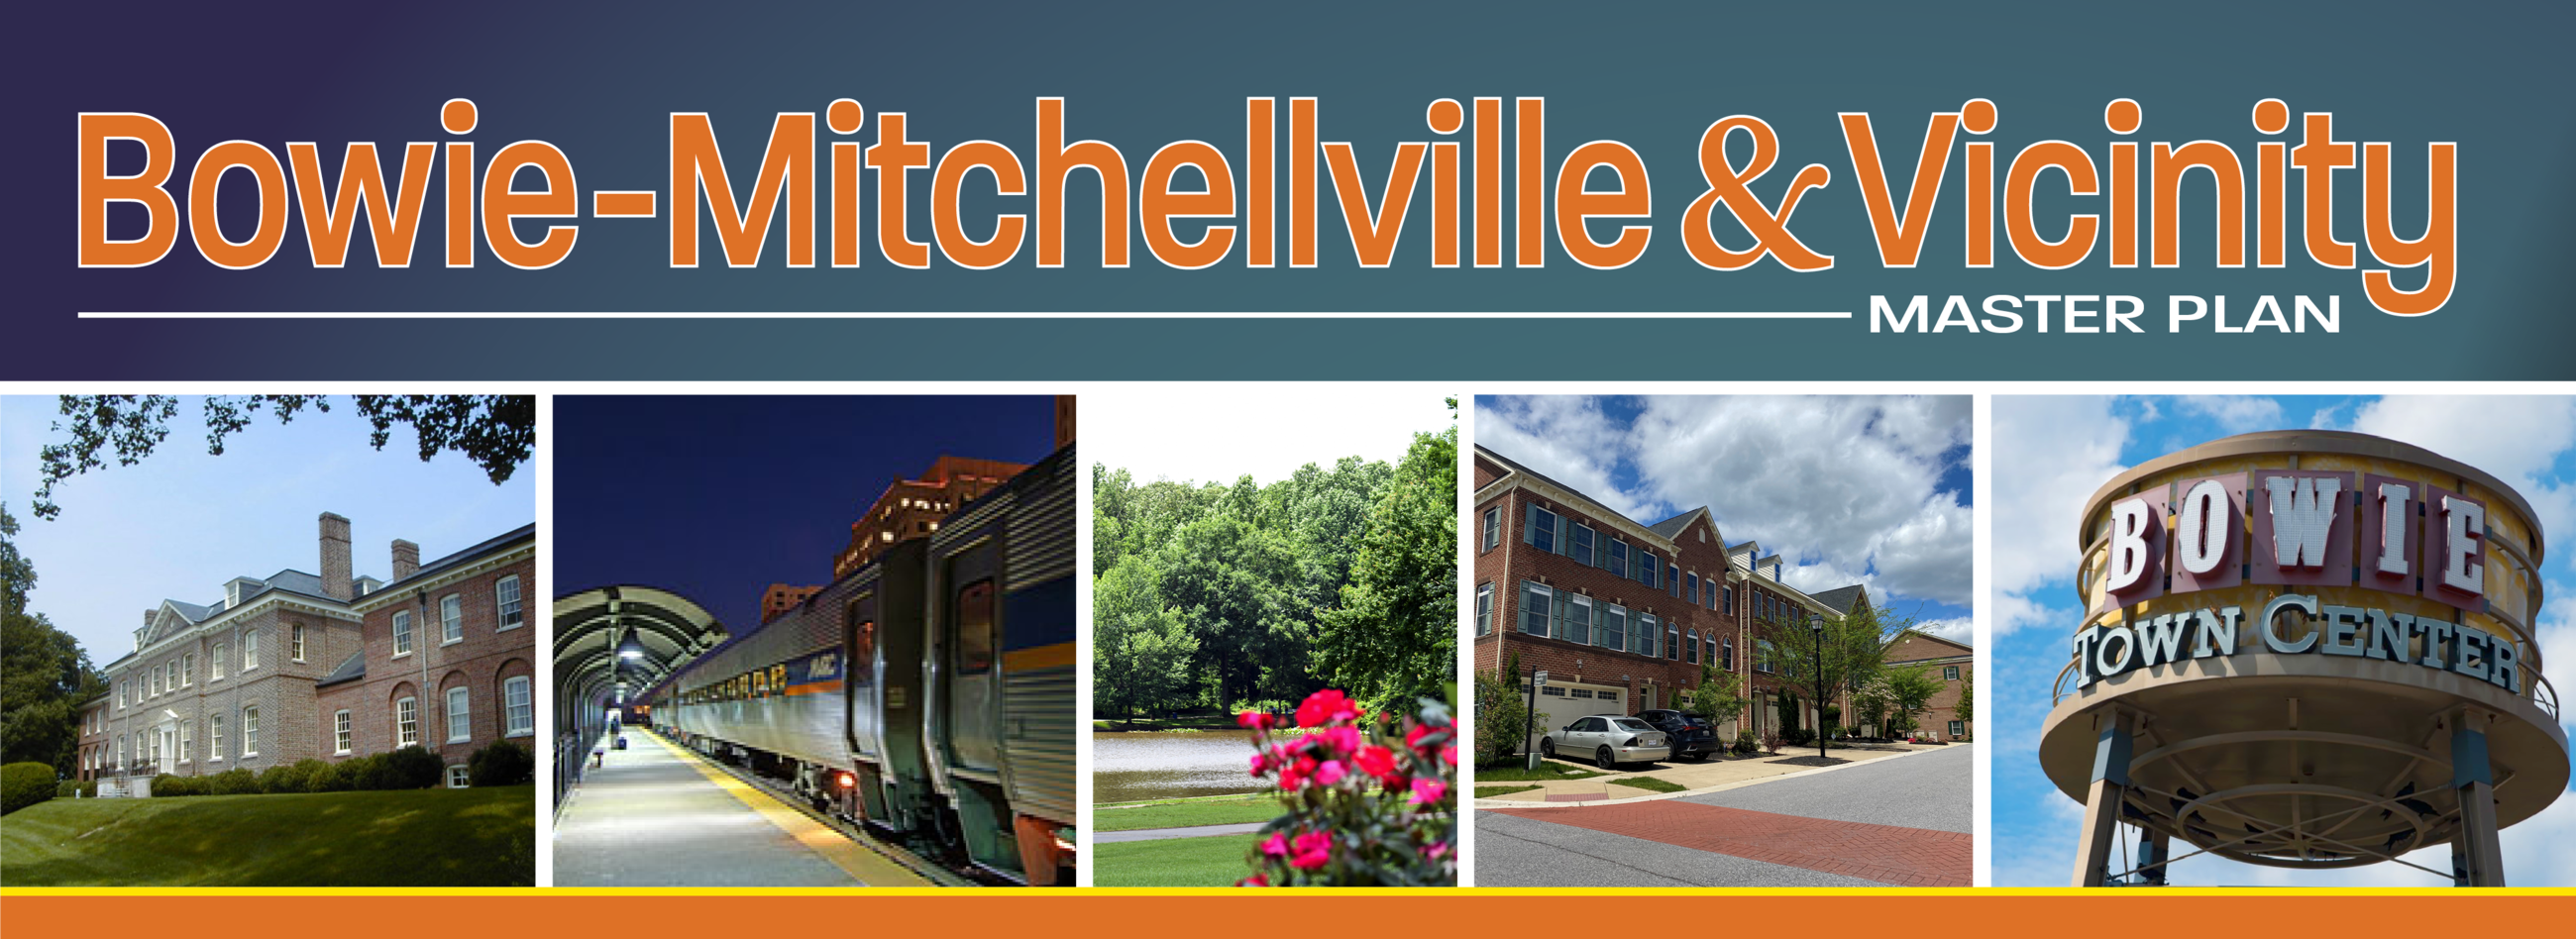 Bowie-Mitchellville and Vicinity Master Plan